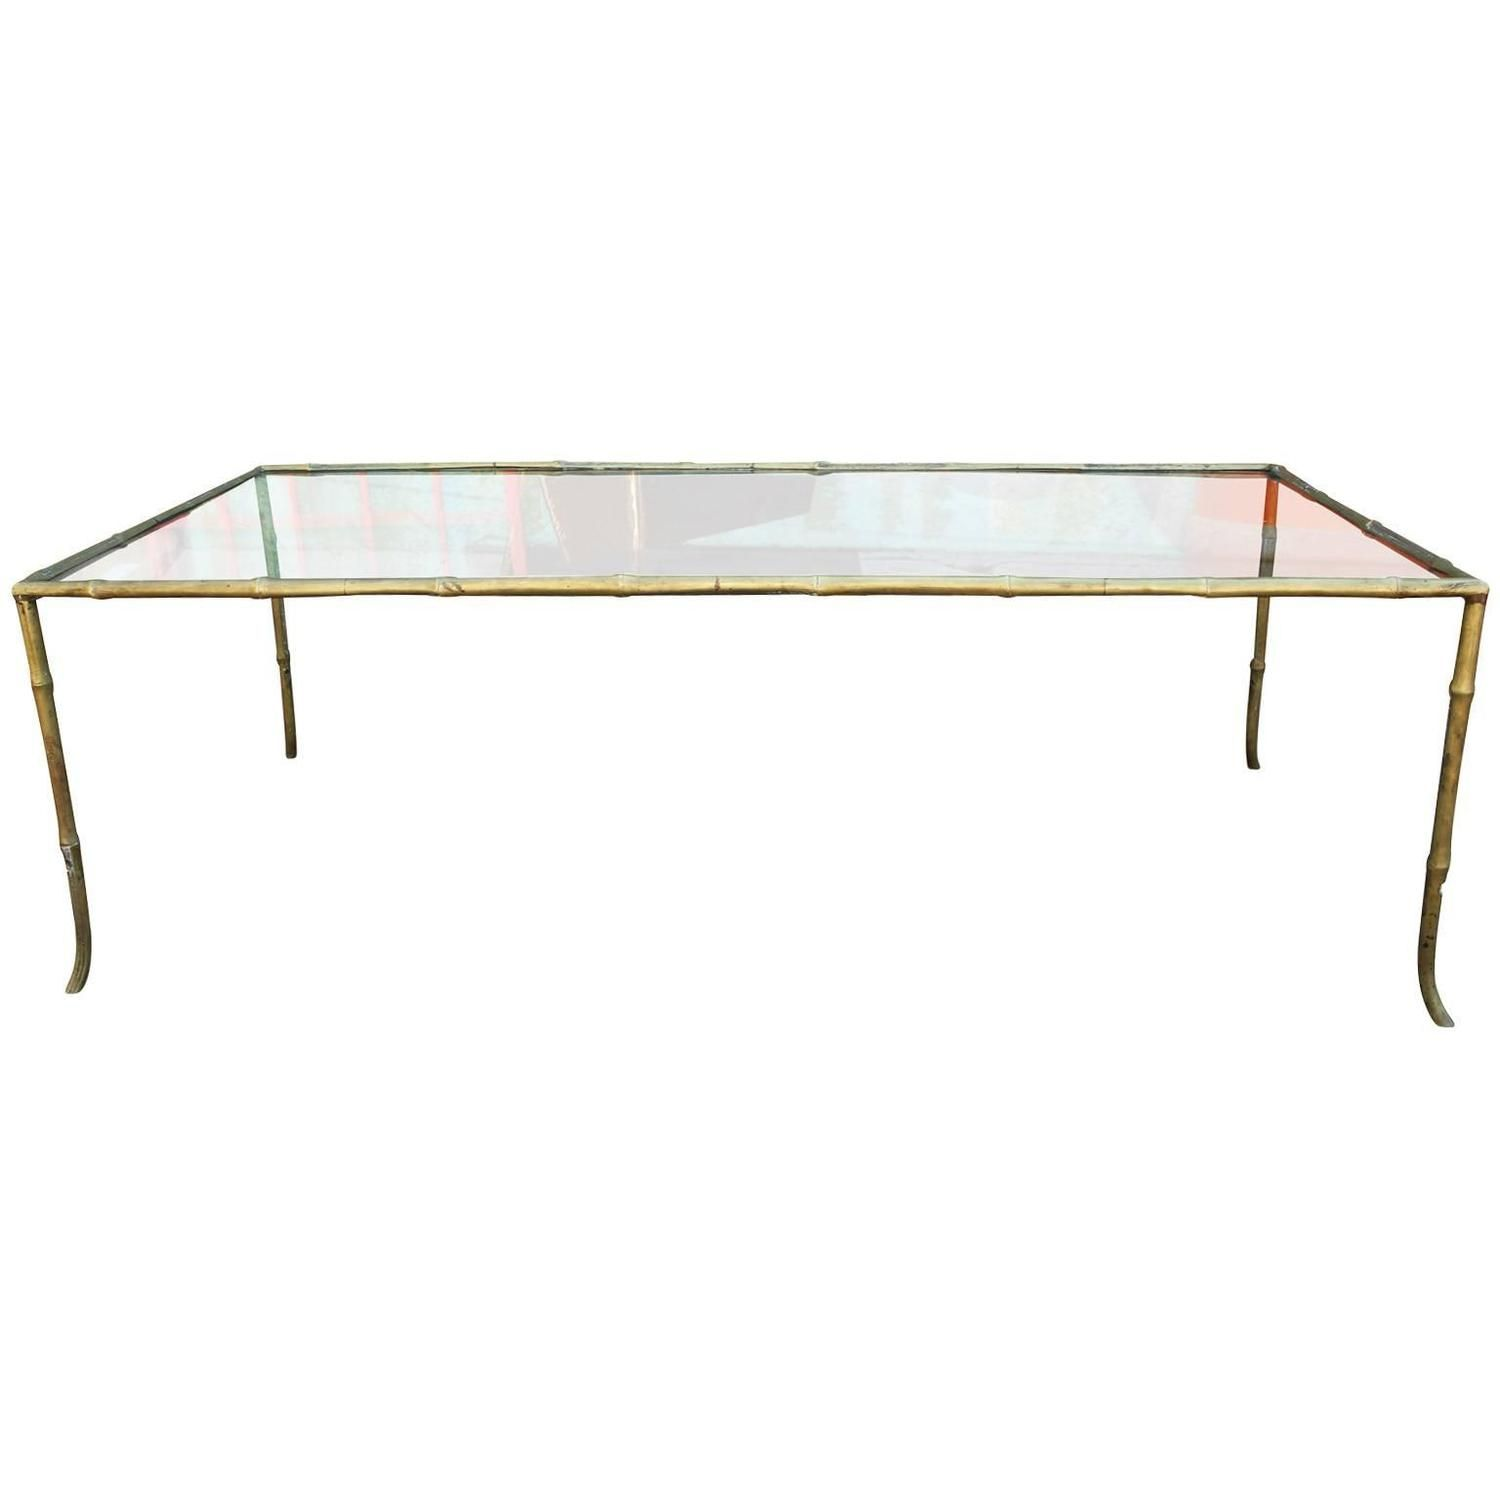 Moder Brass And Glass Faux Bamboo Rectangular Coffee Table Rectangular Coffee Table Faux Bamboo Bamboo Coffee Table [ 1500 x 1500 Pixel ]